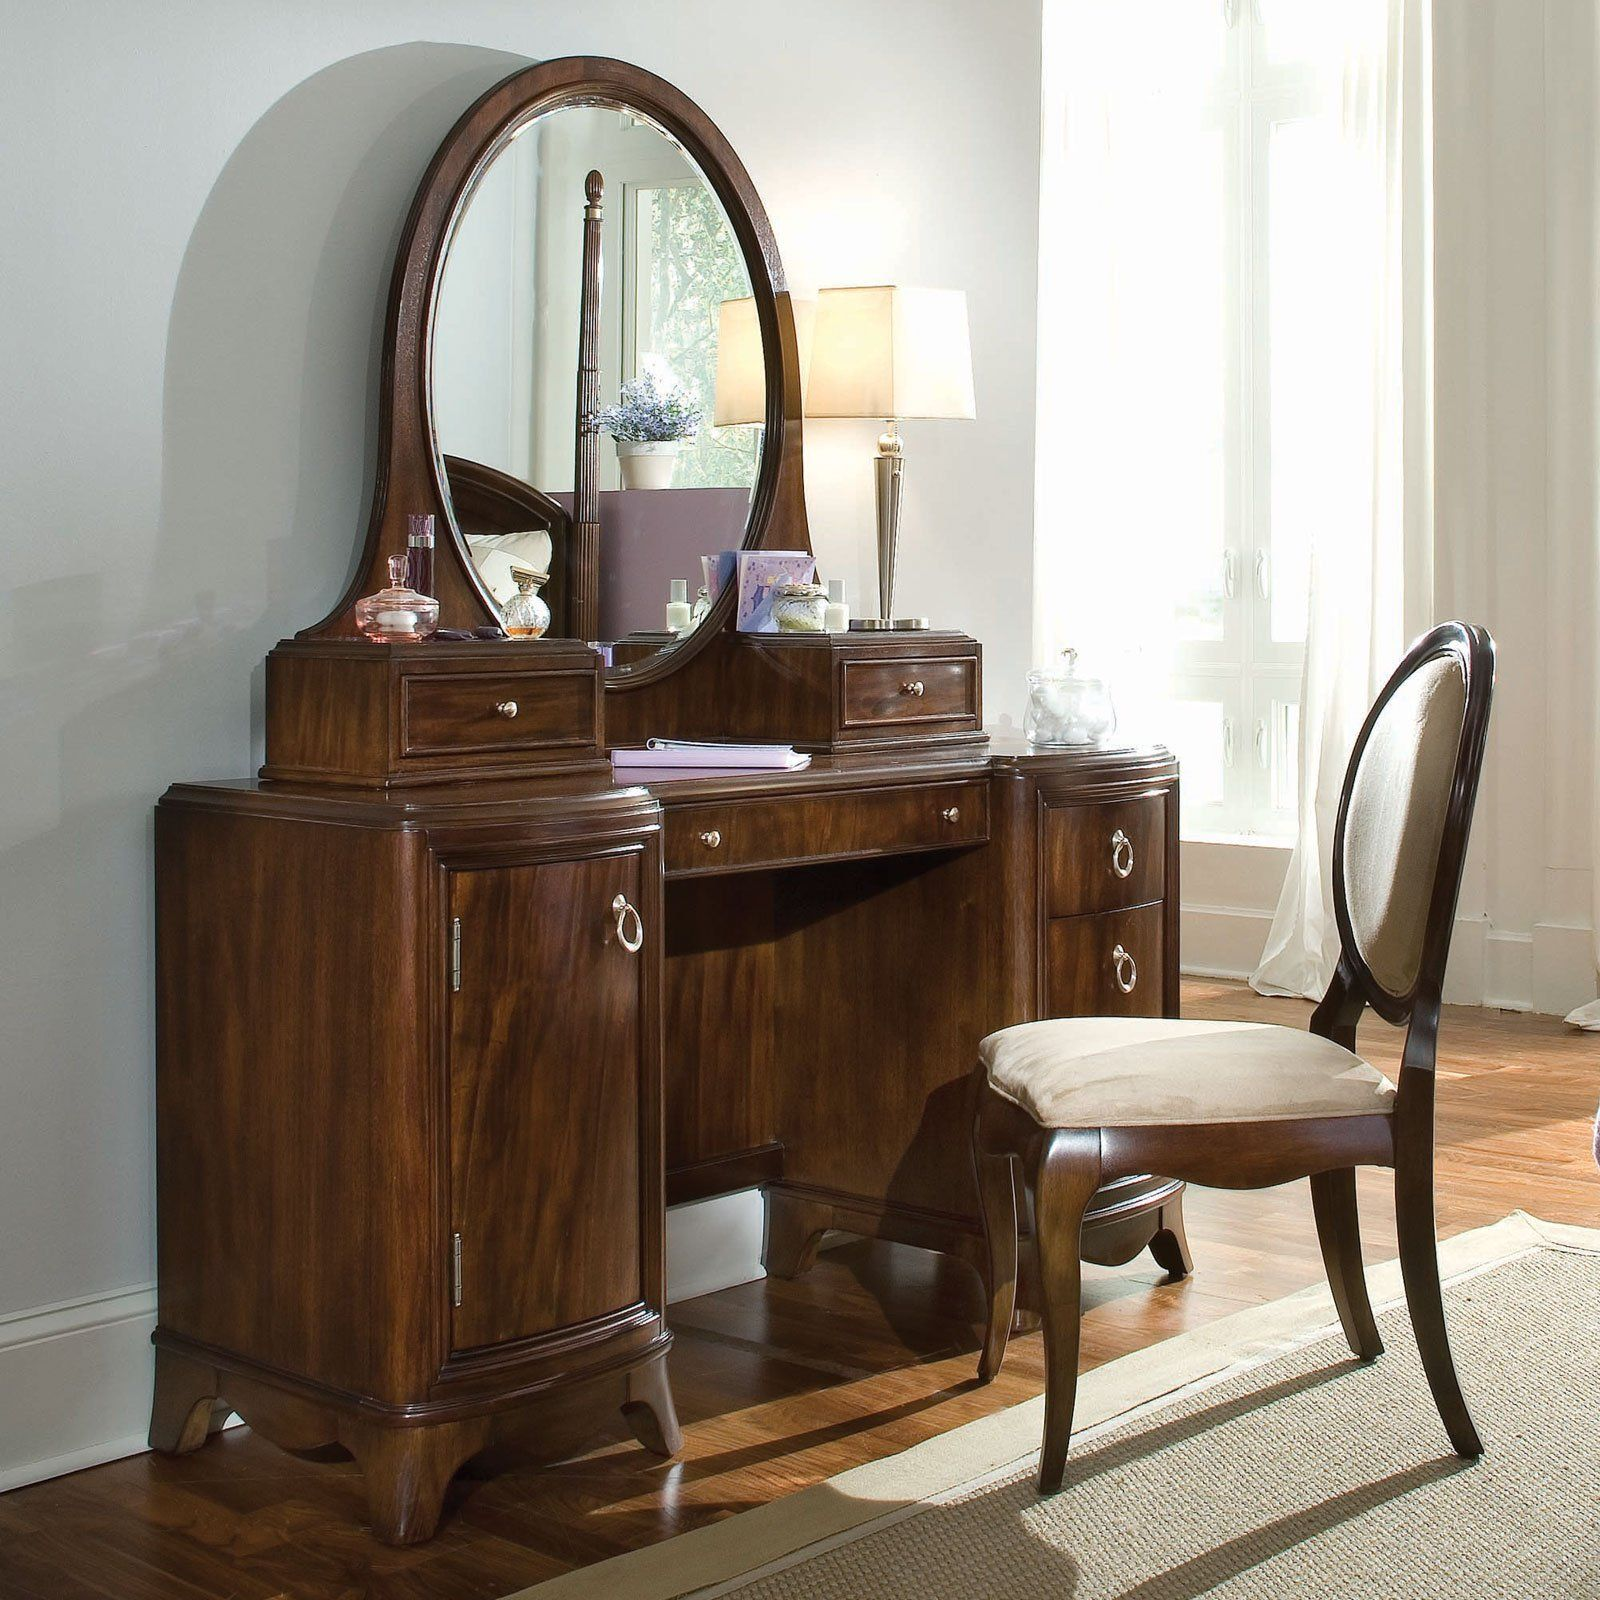 wooden floor stylish antique vanity table design for dressing table